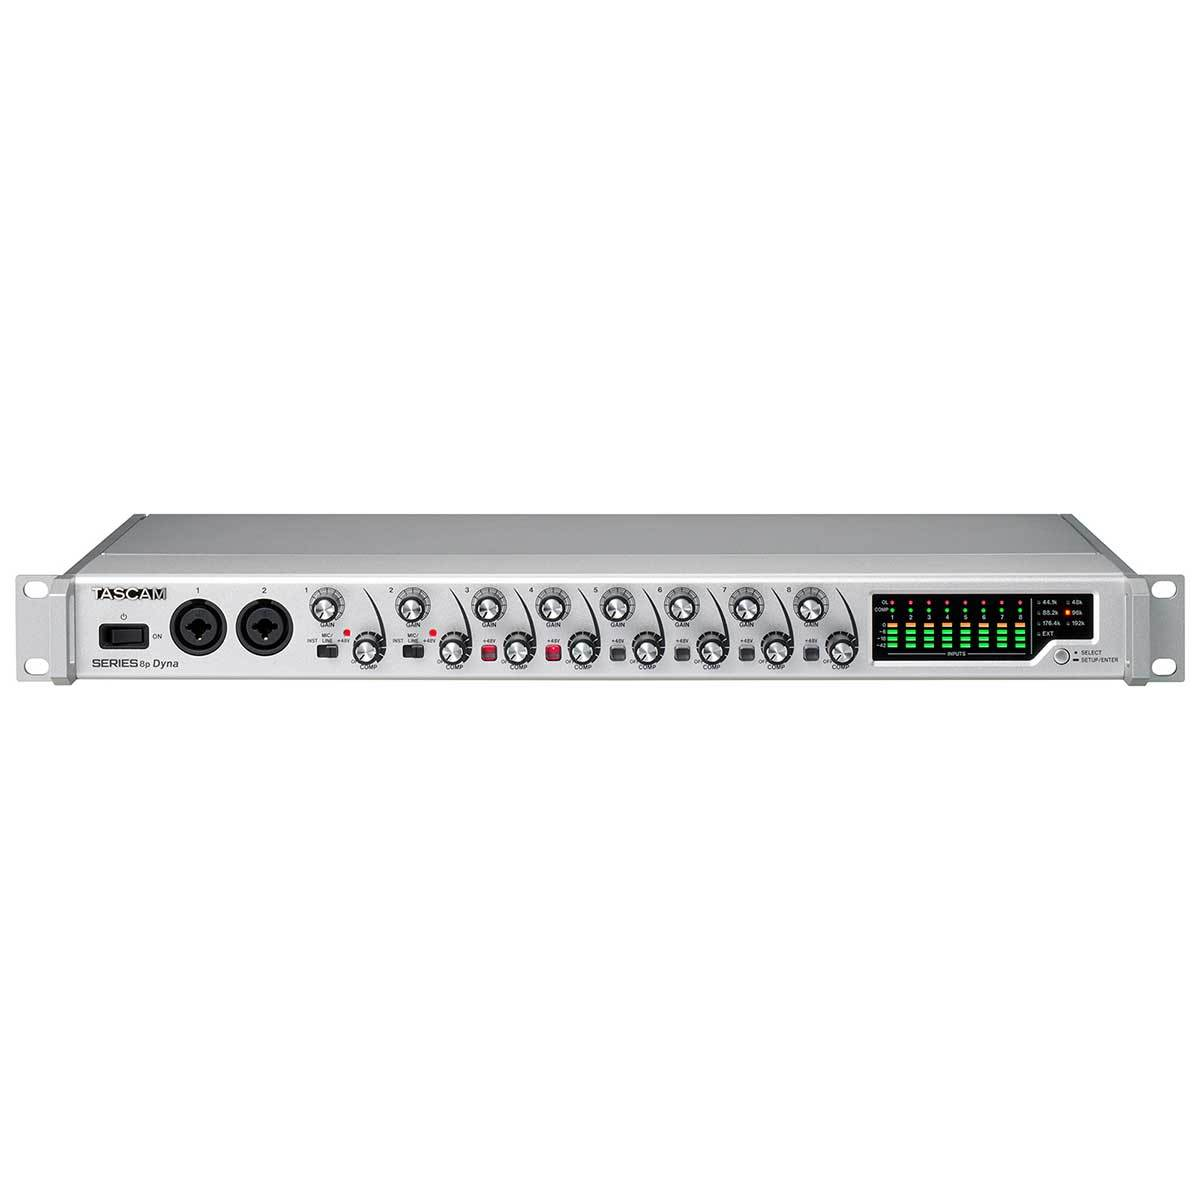 TASCAM Series 8p Dyna 8 channel mic preamplifier with analog compressor